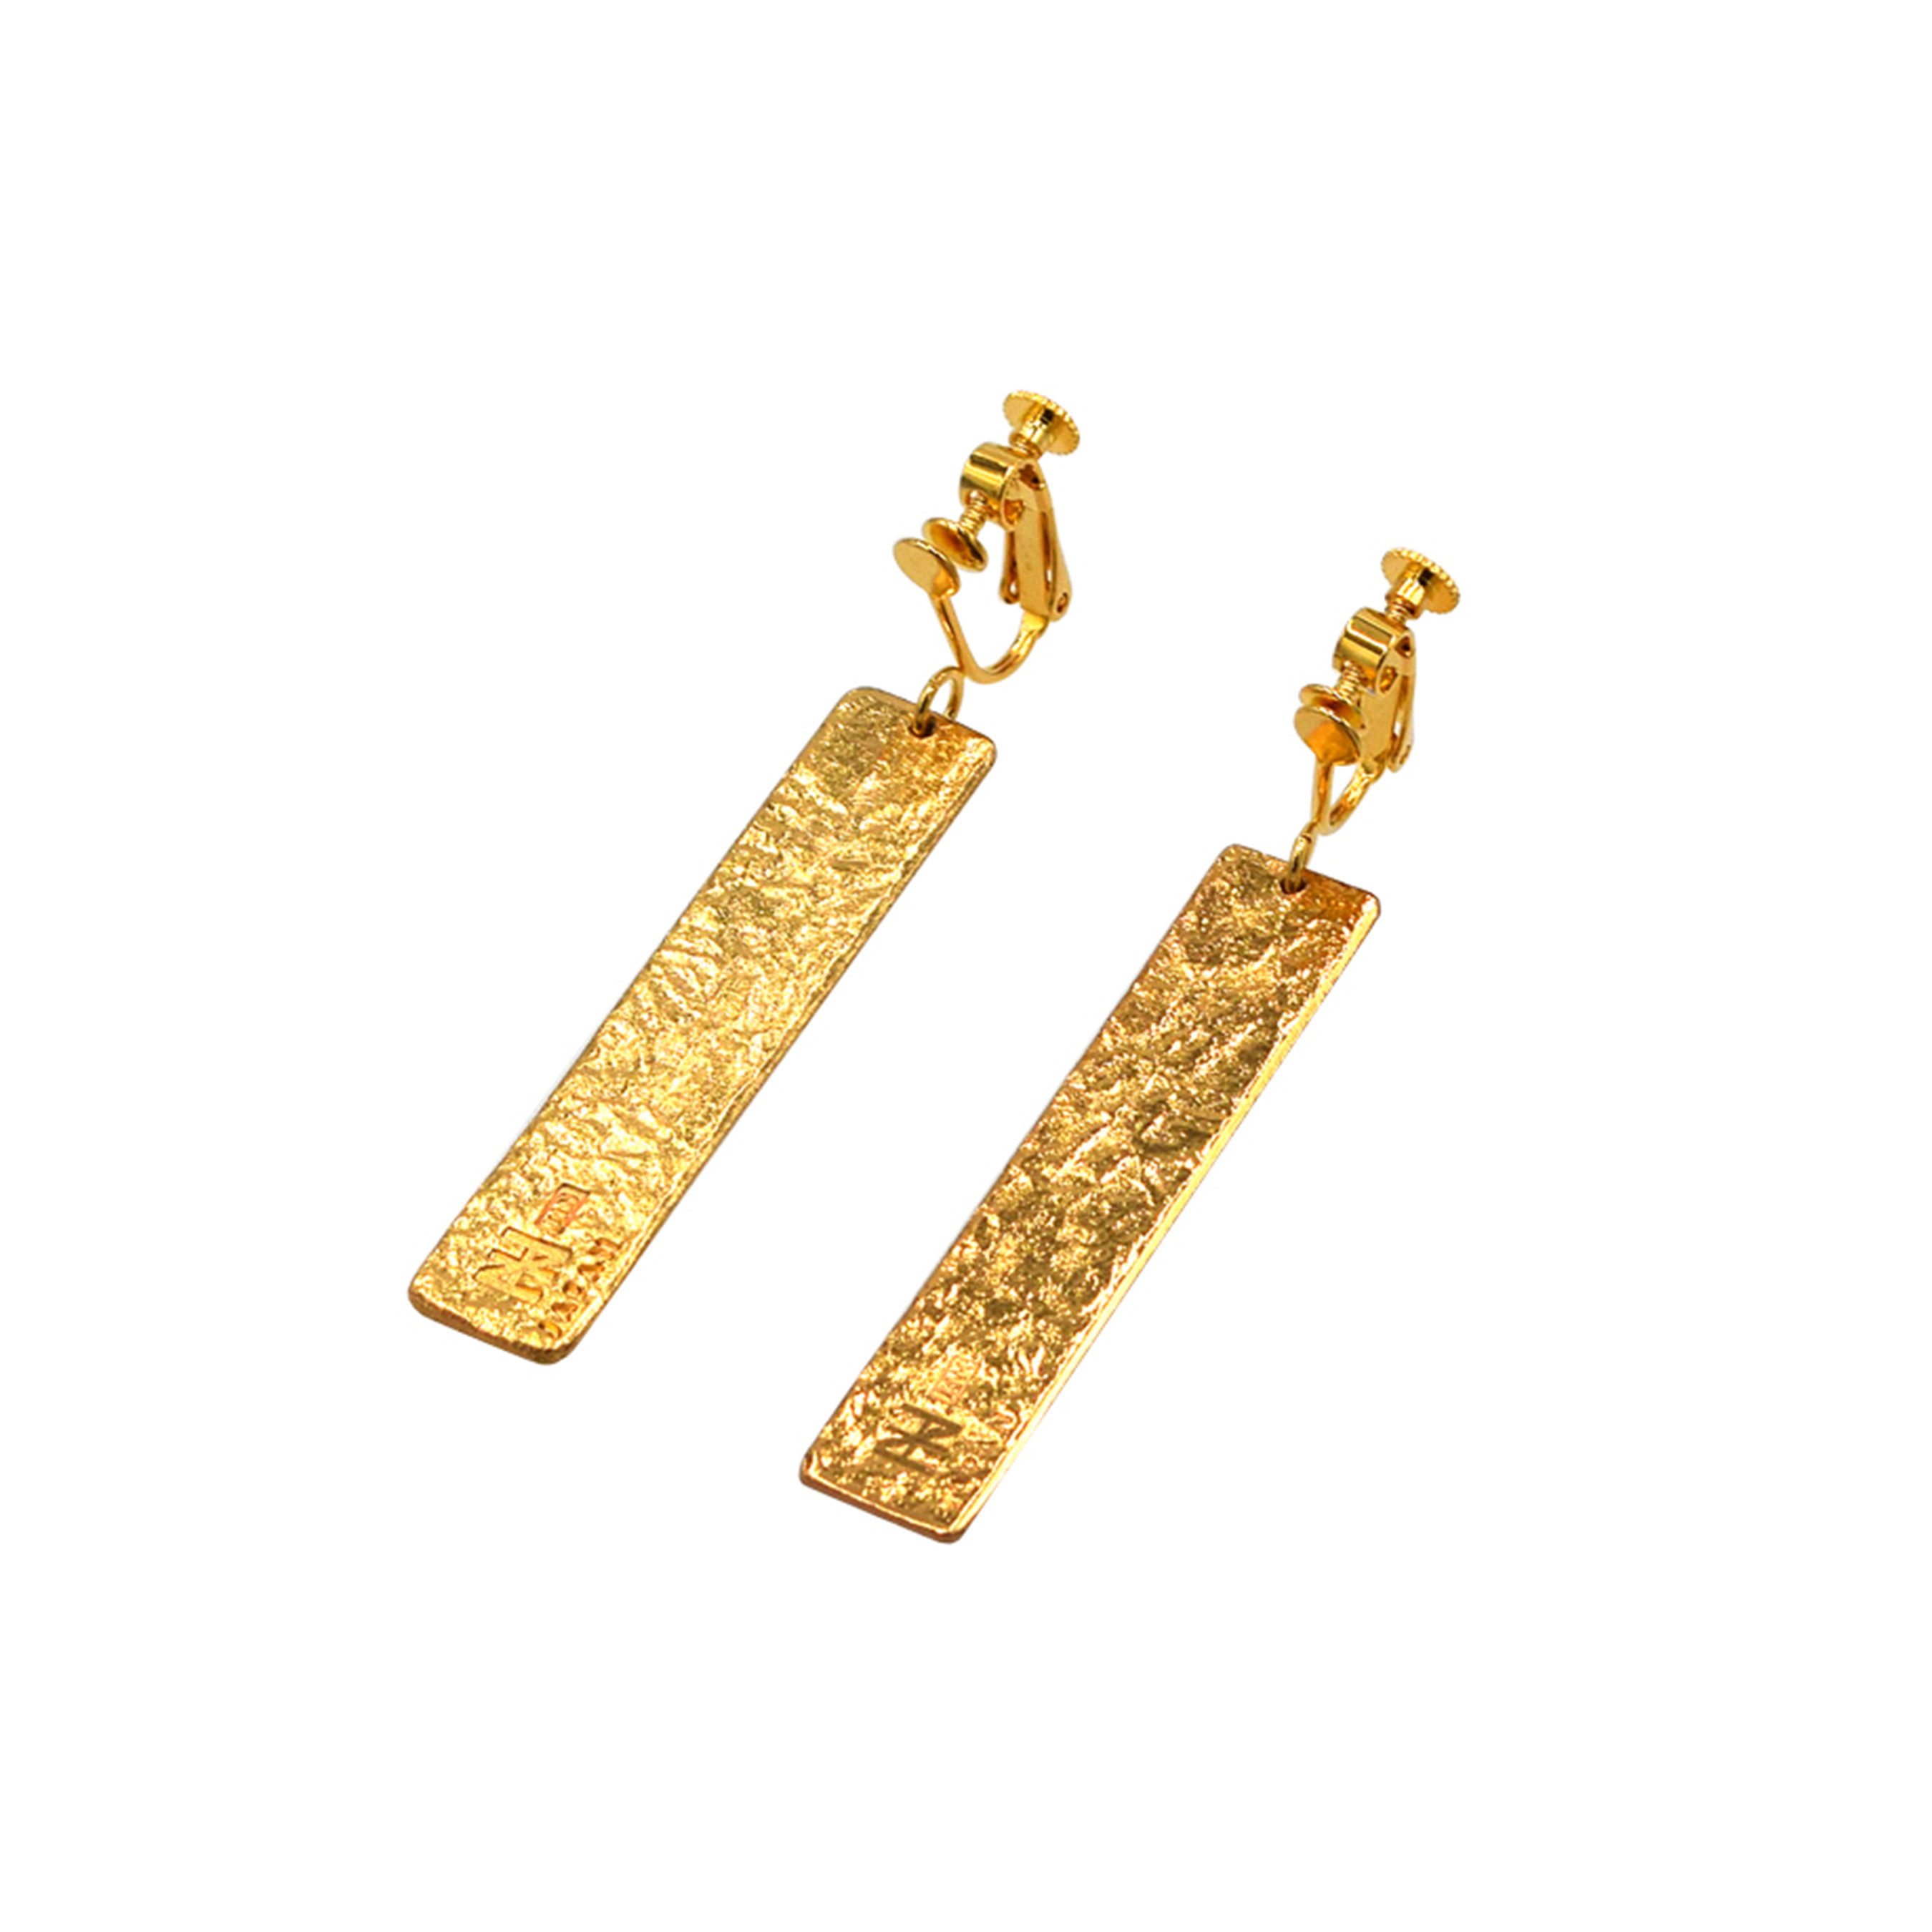 《イヤリング 》TIN BREATH Earrings 10×50mm Gold